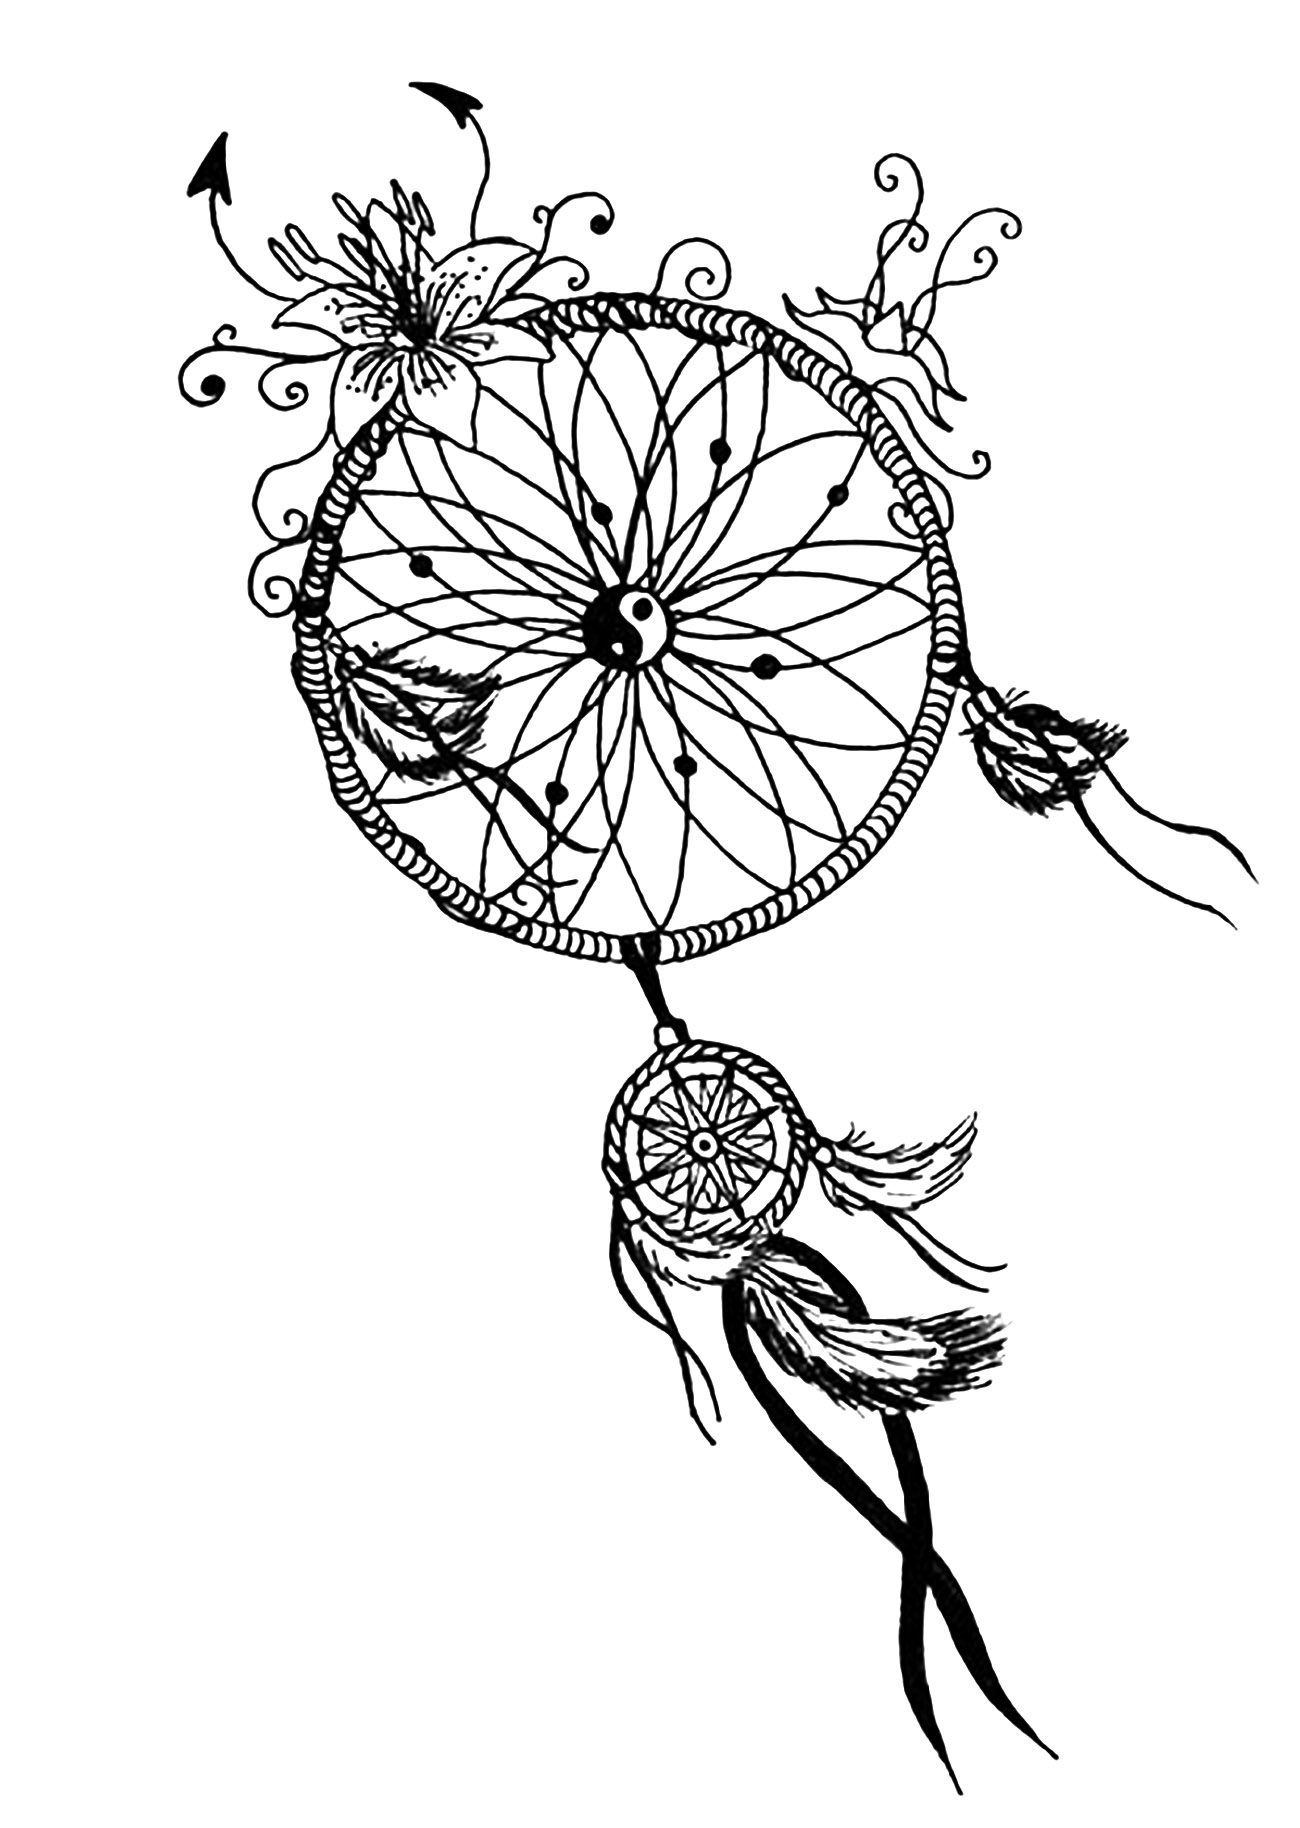 Mandala to download free dreamcatcher